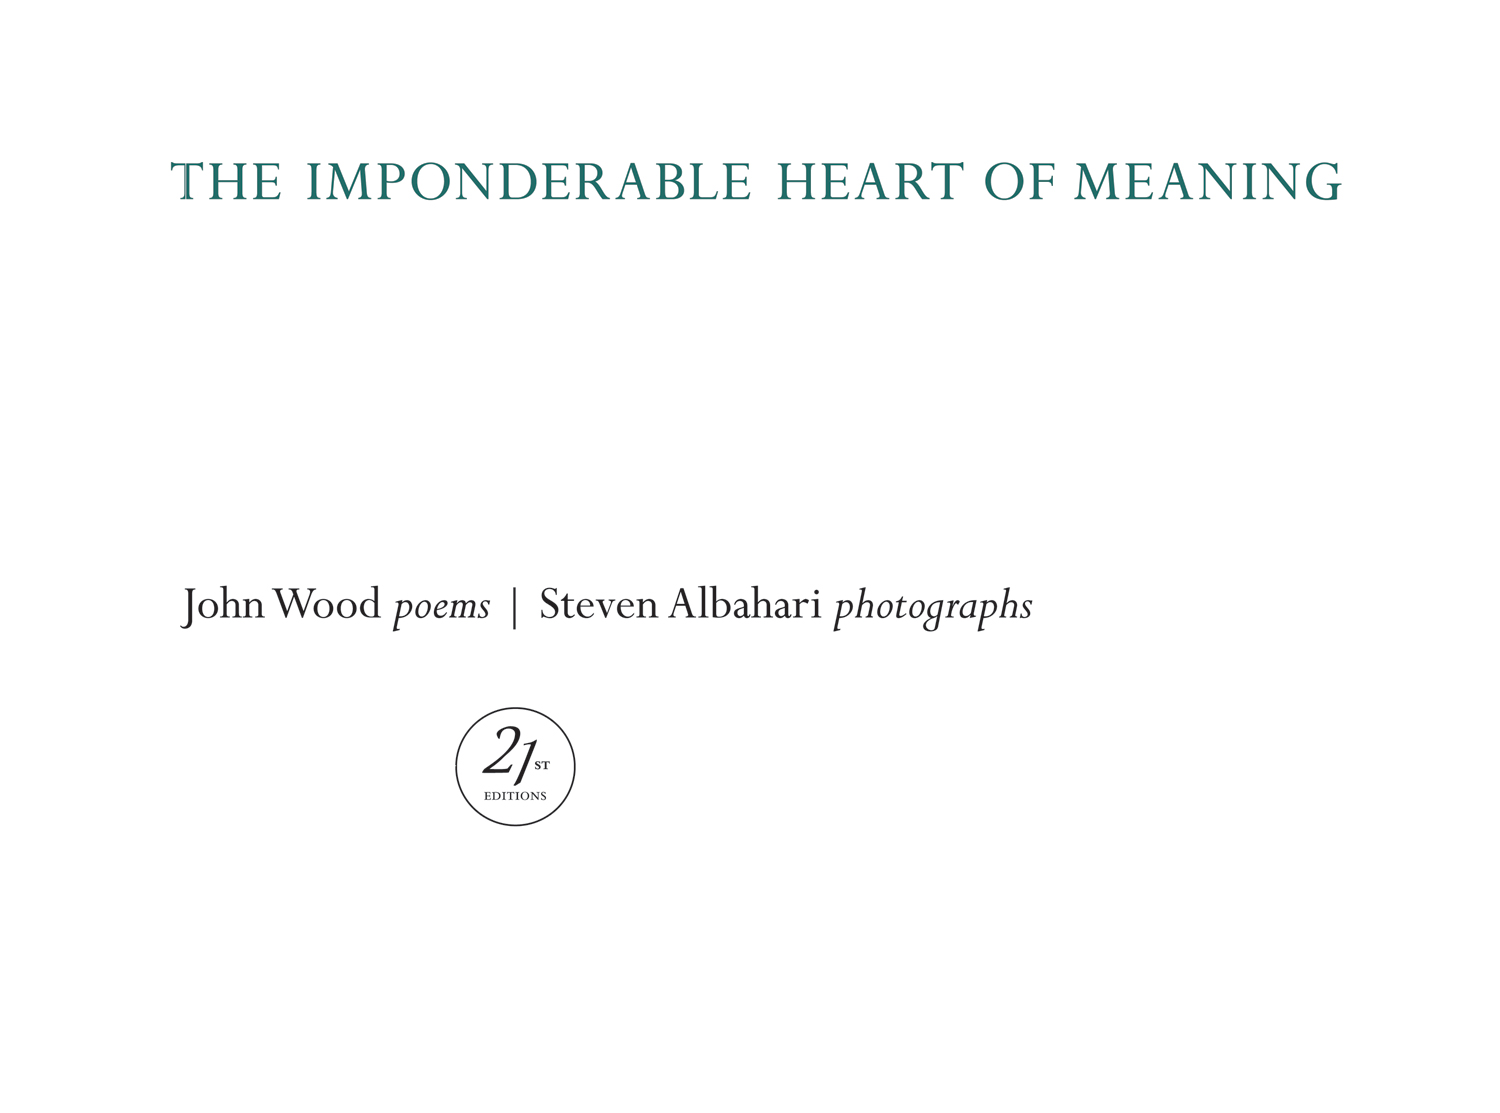 John Wood, The Imponderable Heart of Meaning